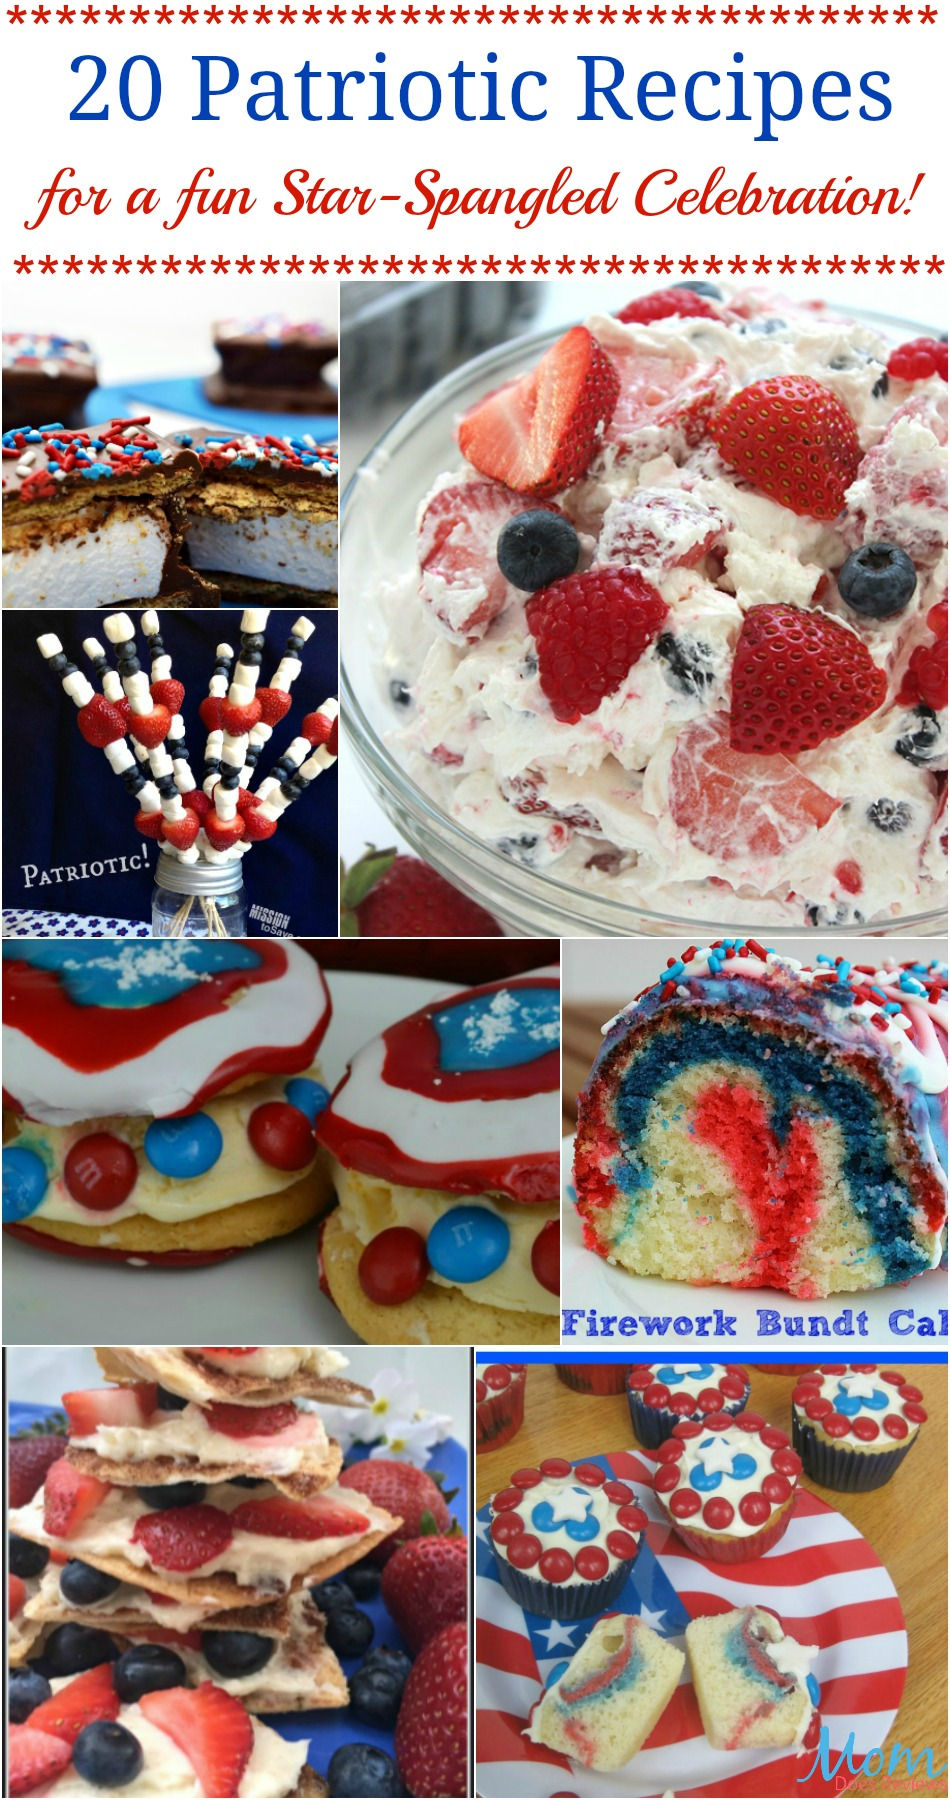 20 Patriotic Recipes for a fun Star-Spangled Celebration!